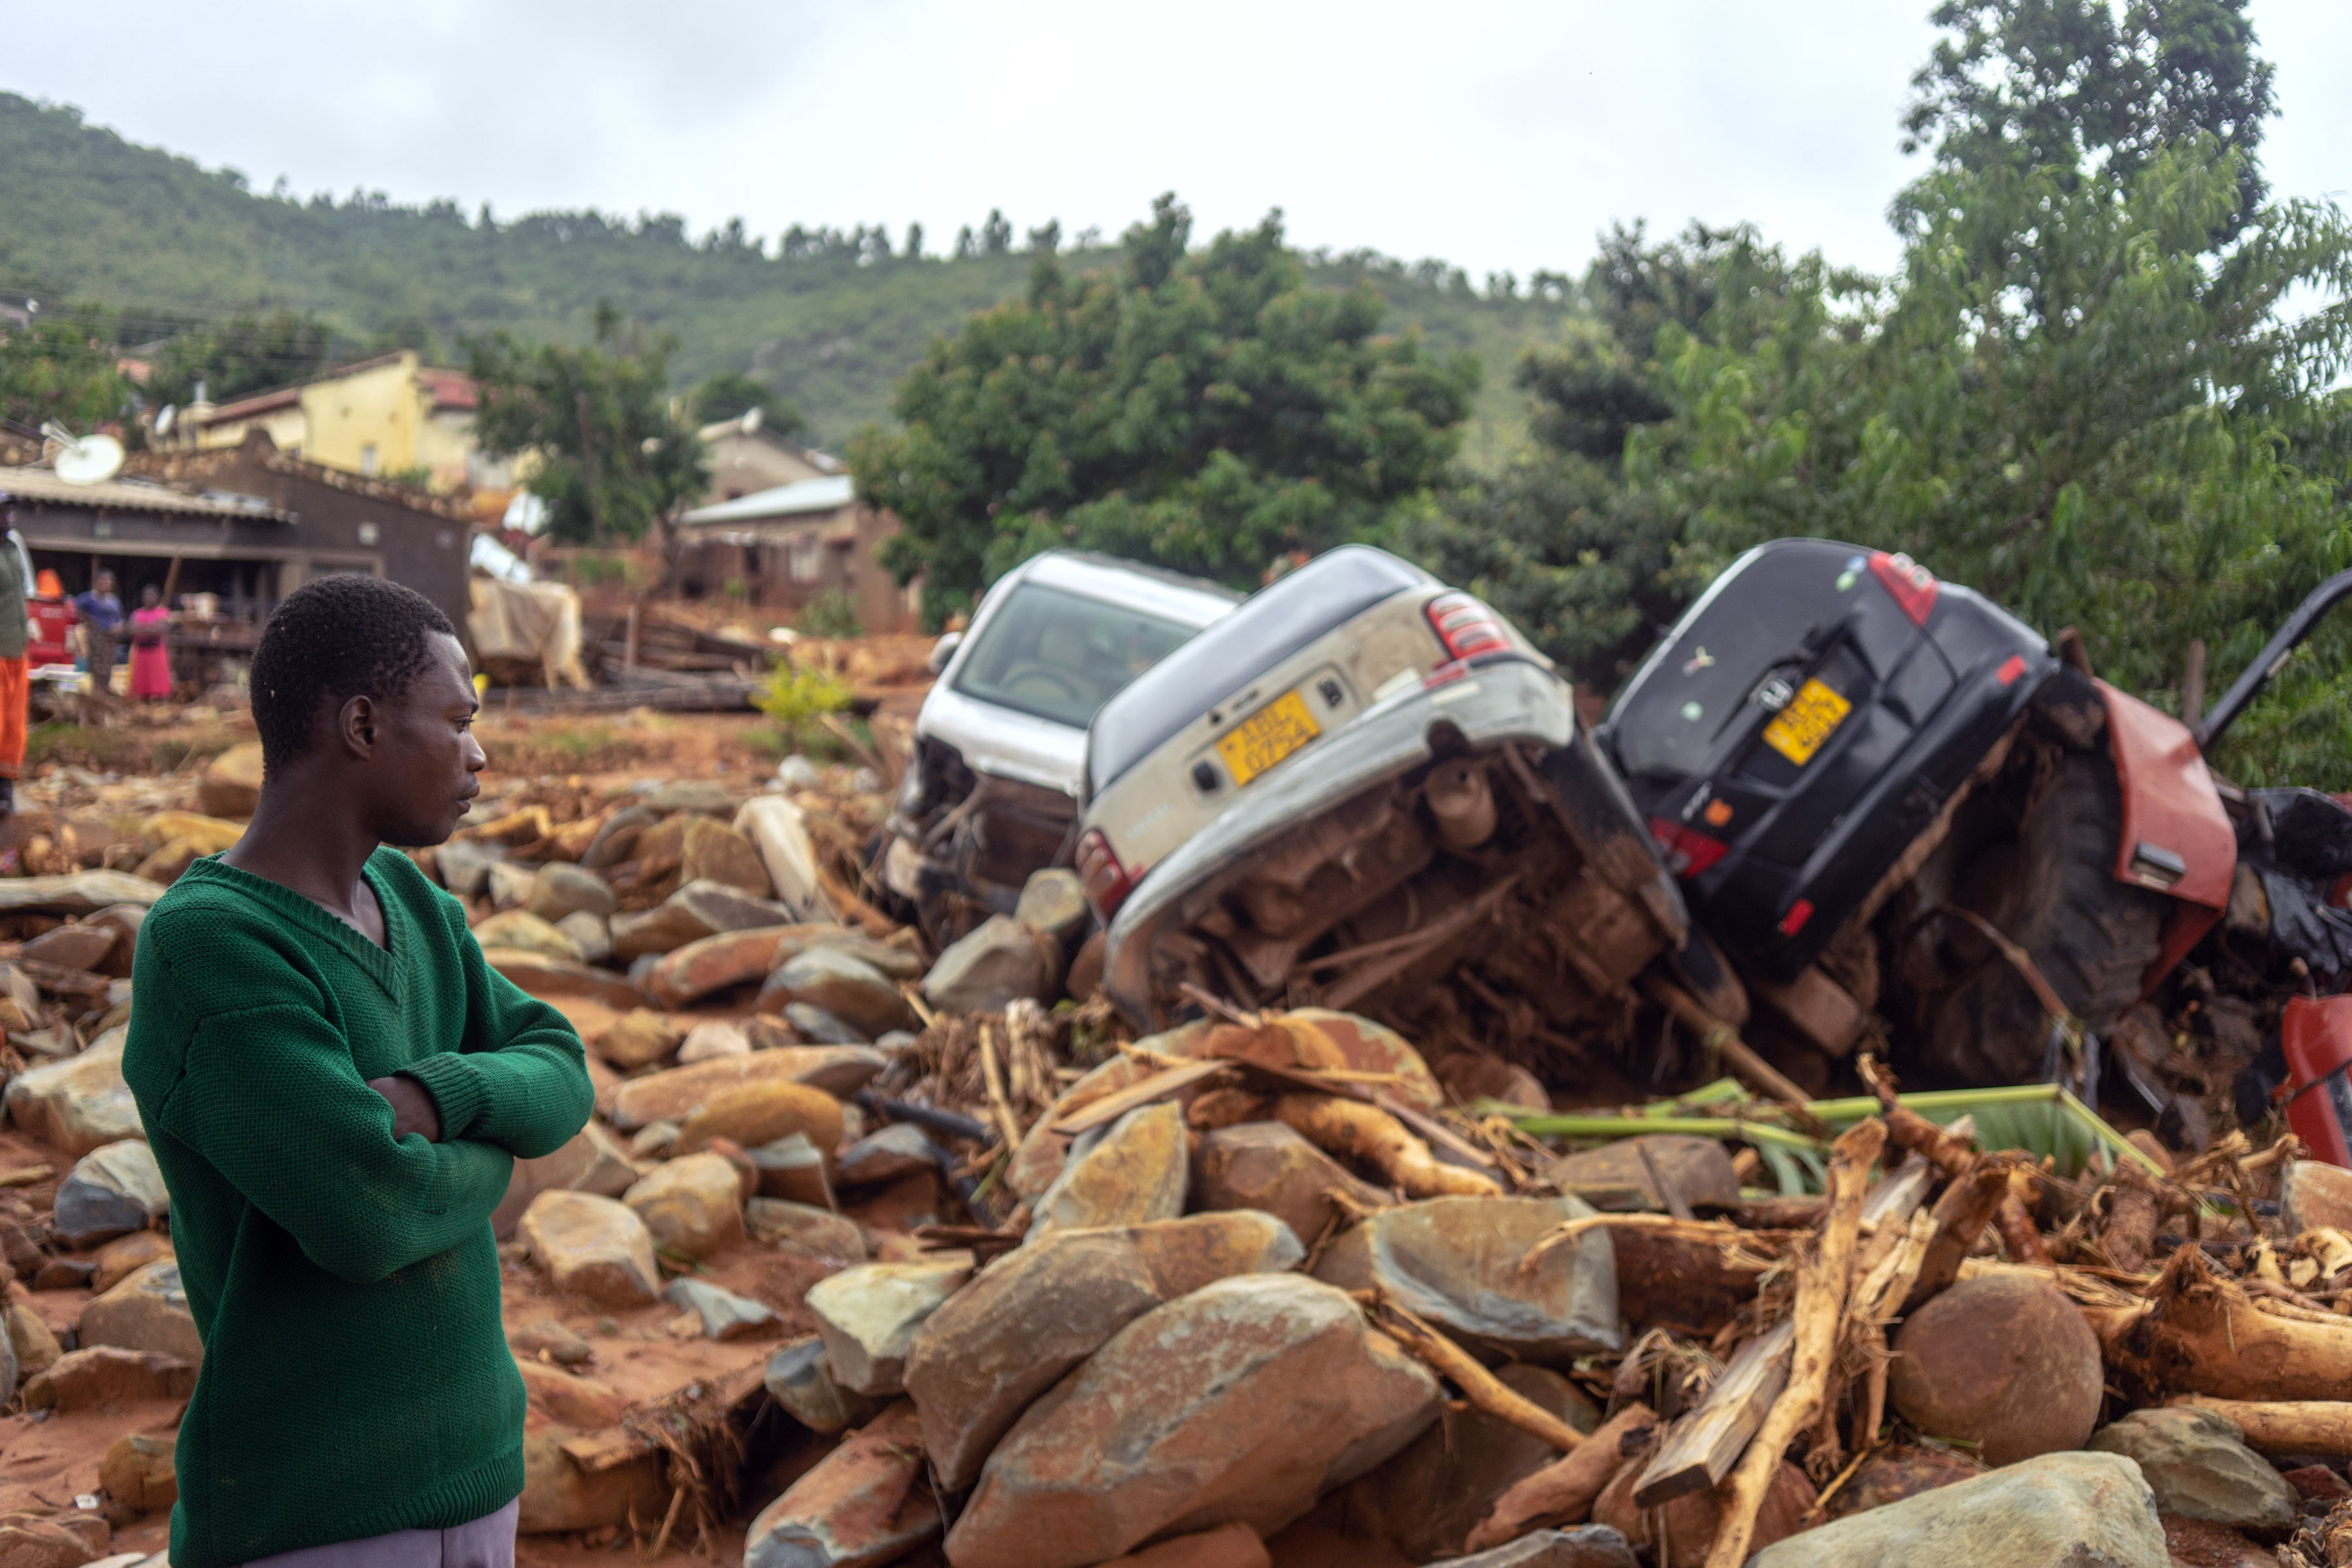 A man stands next to the wreckage a vehicles washed away on March 18, 2019 in Chimanimani, eastern Zimbabwe, after the area was hit by the cyclone Idai. (ZINYANGE AUNTONY/AFP/Getty Images)